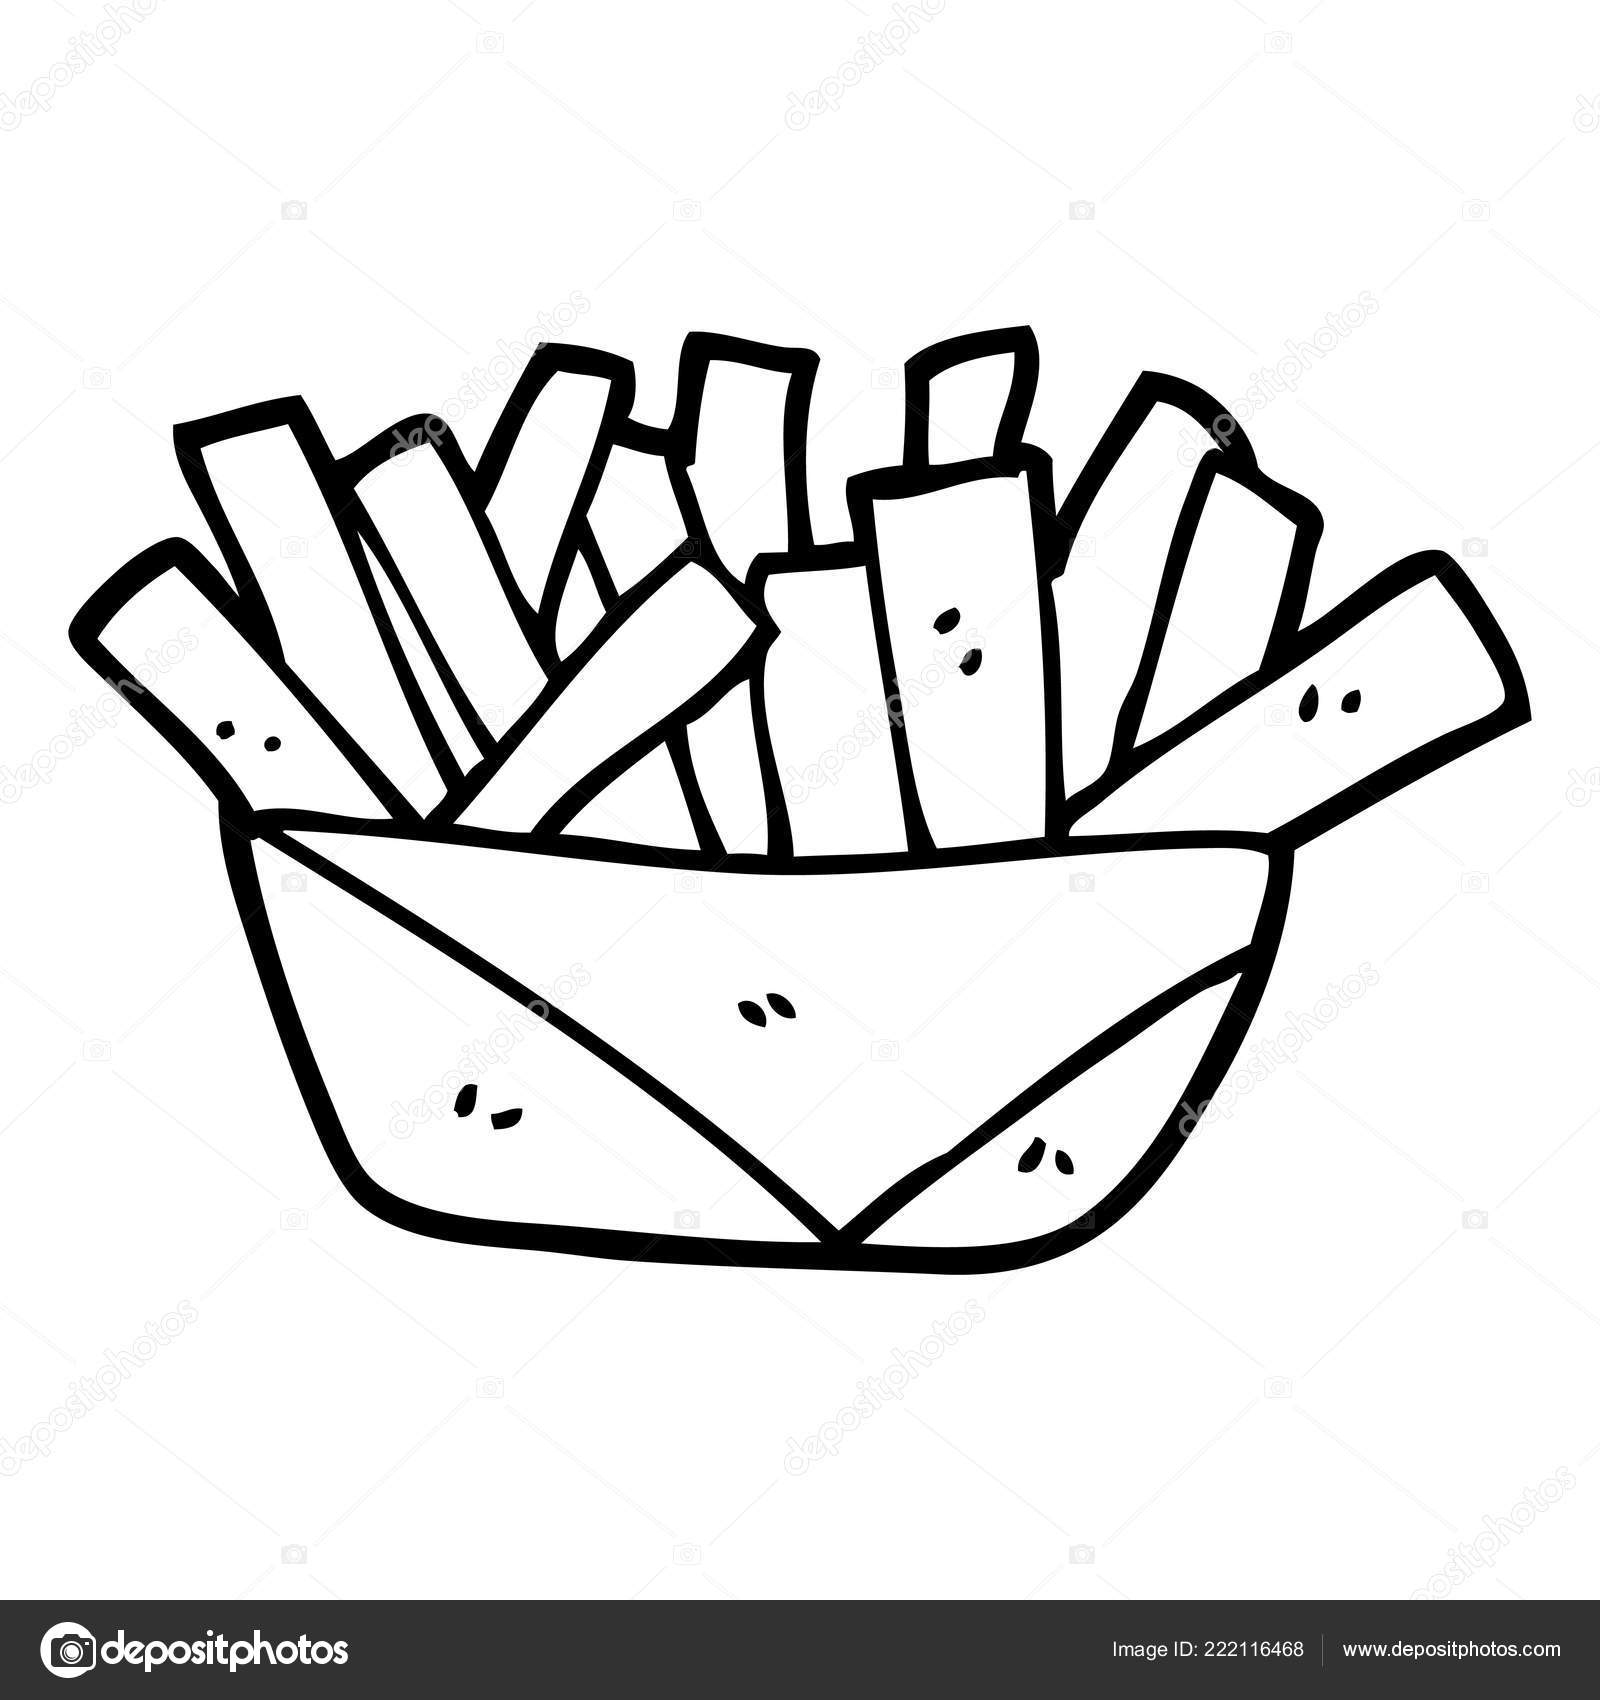 clipart french fries black and white black white cartoon french fries stock vector c lineartestpilot 222116468 https depositphotos com 222116468 stock illustration black white cartoon french fries html